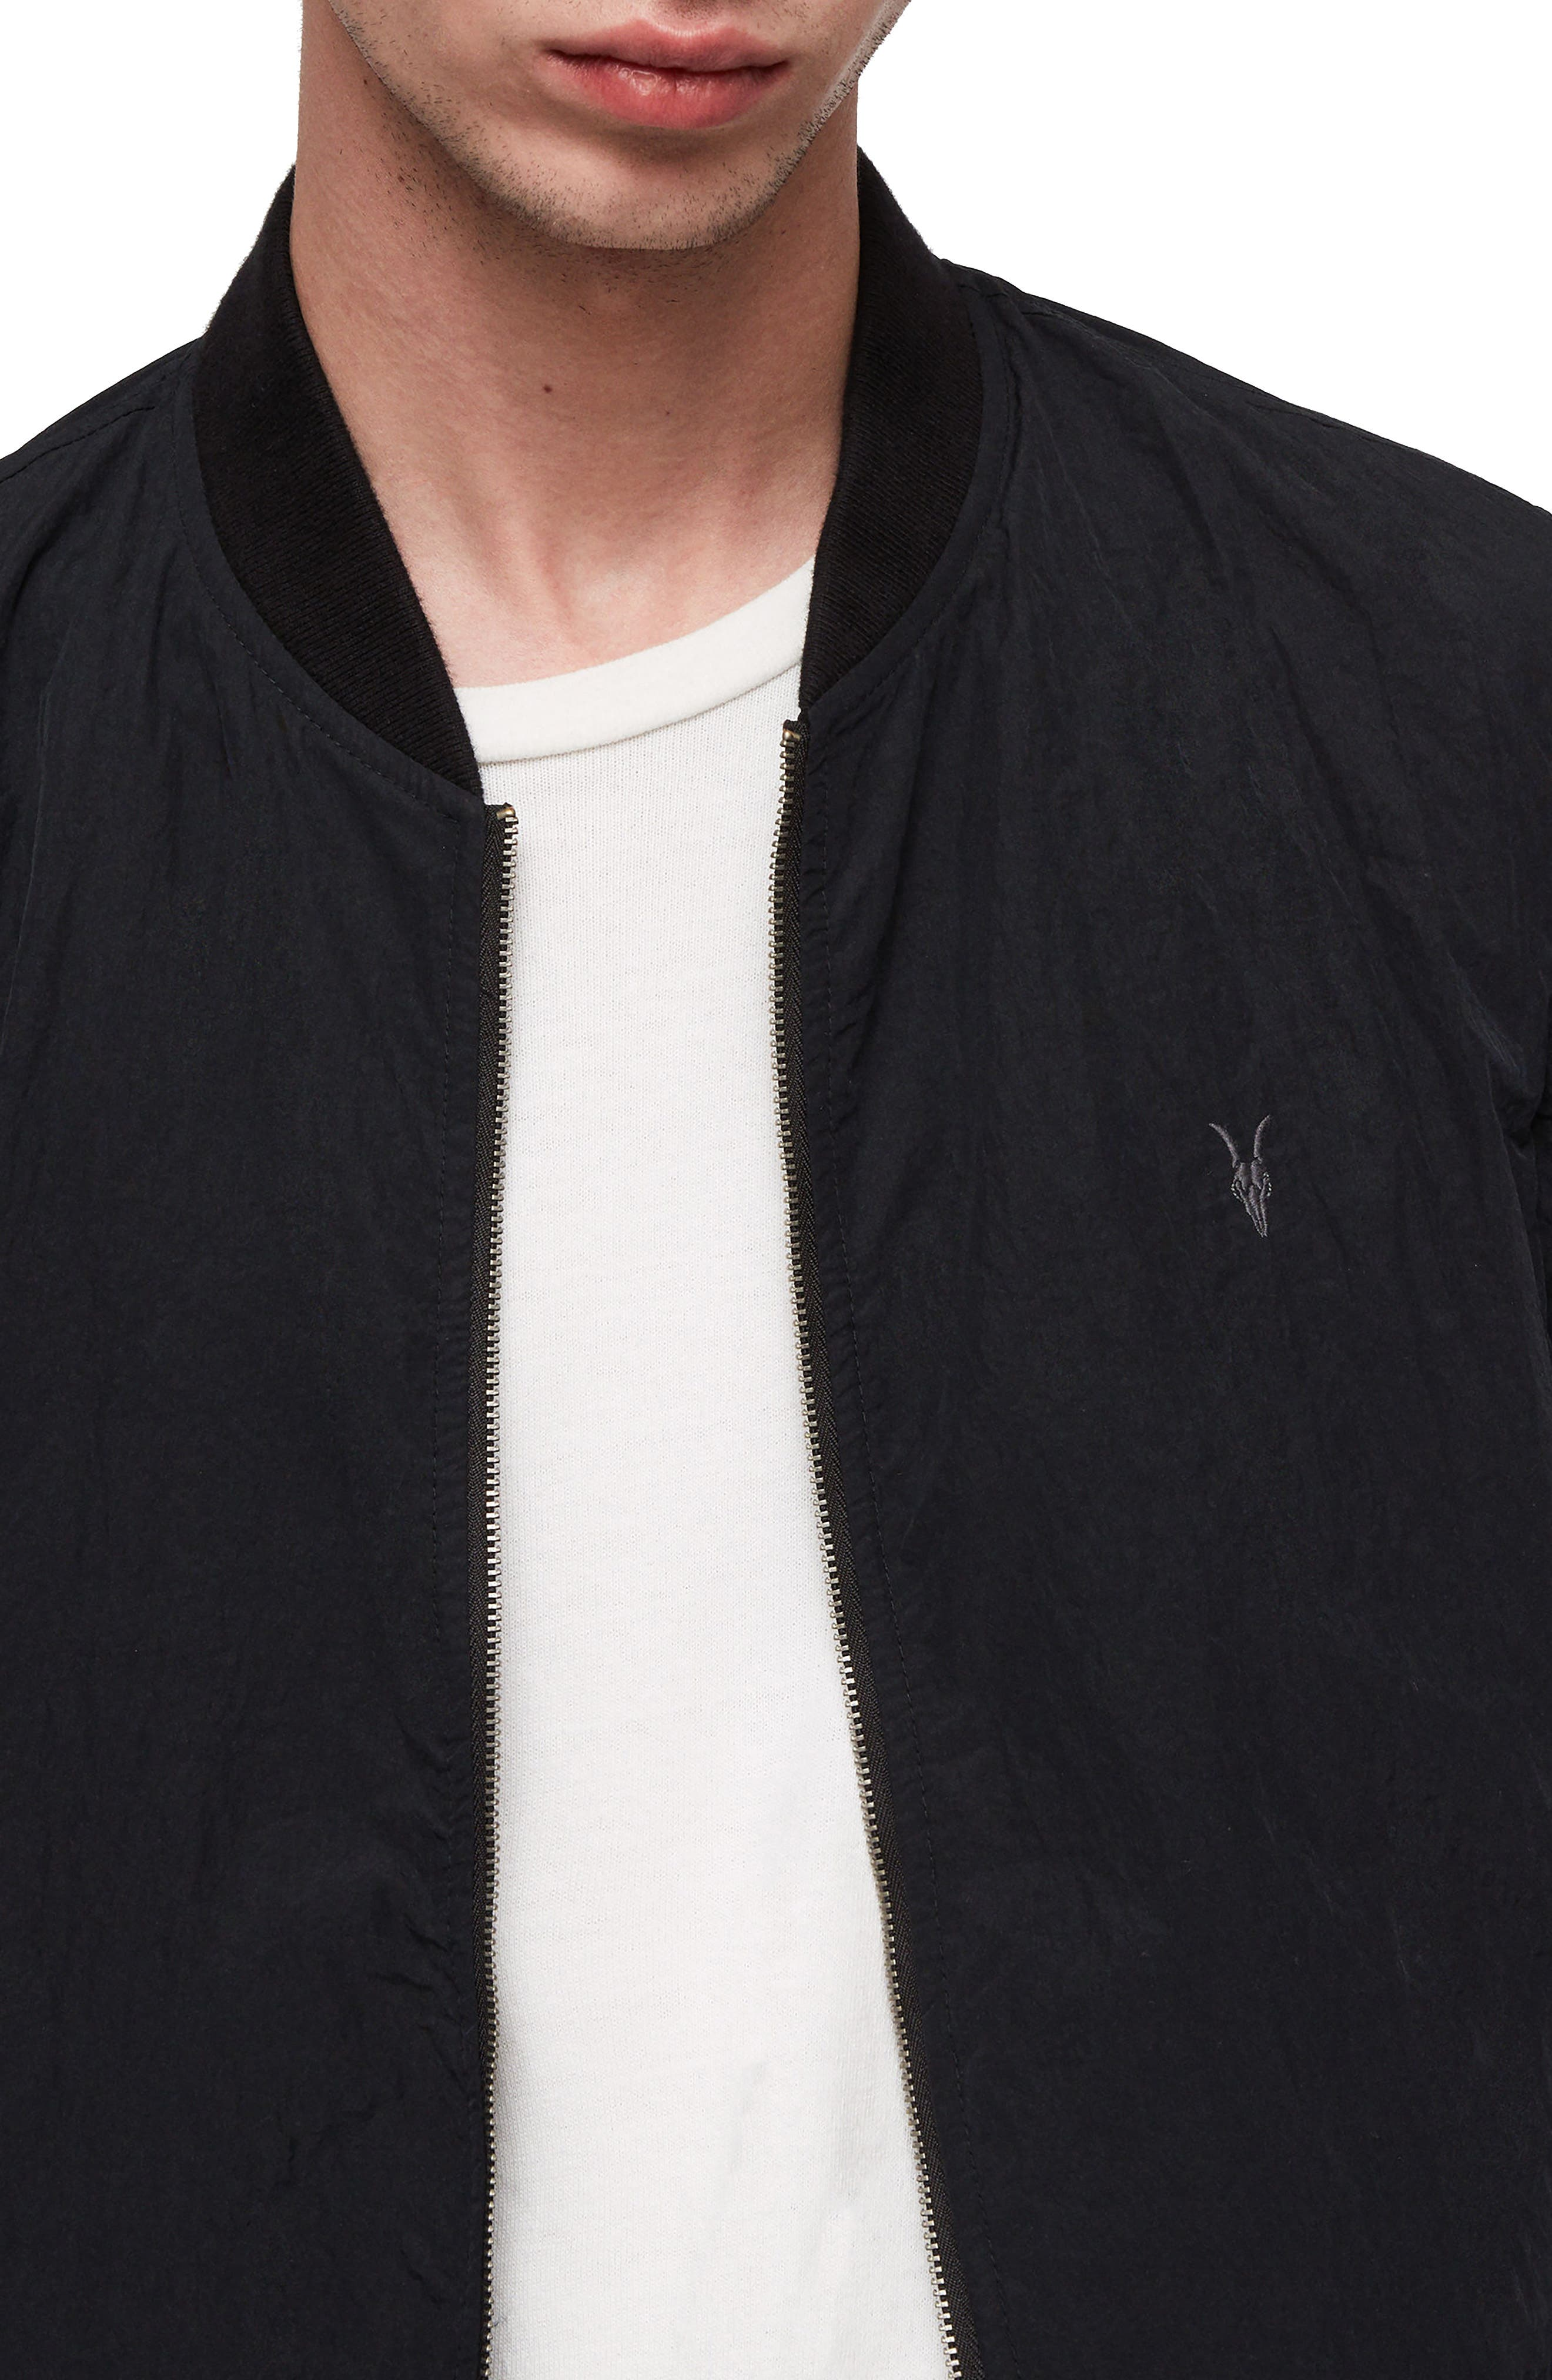 Fleet Lightweight Nylon Bomber Jacket,                             Alternate thumbnail 3, color,                             BLACK